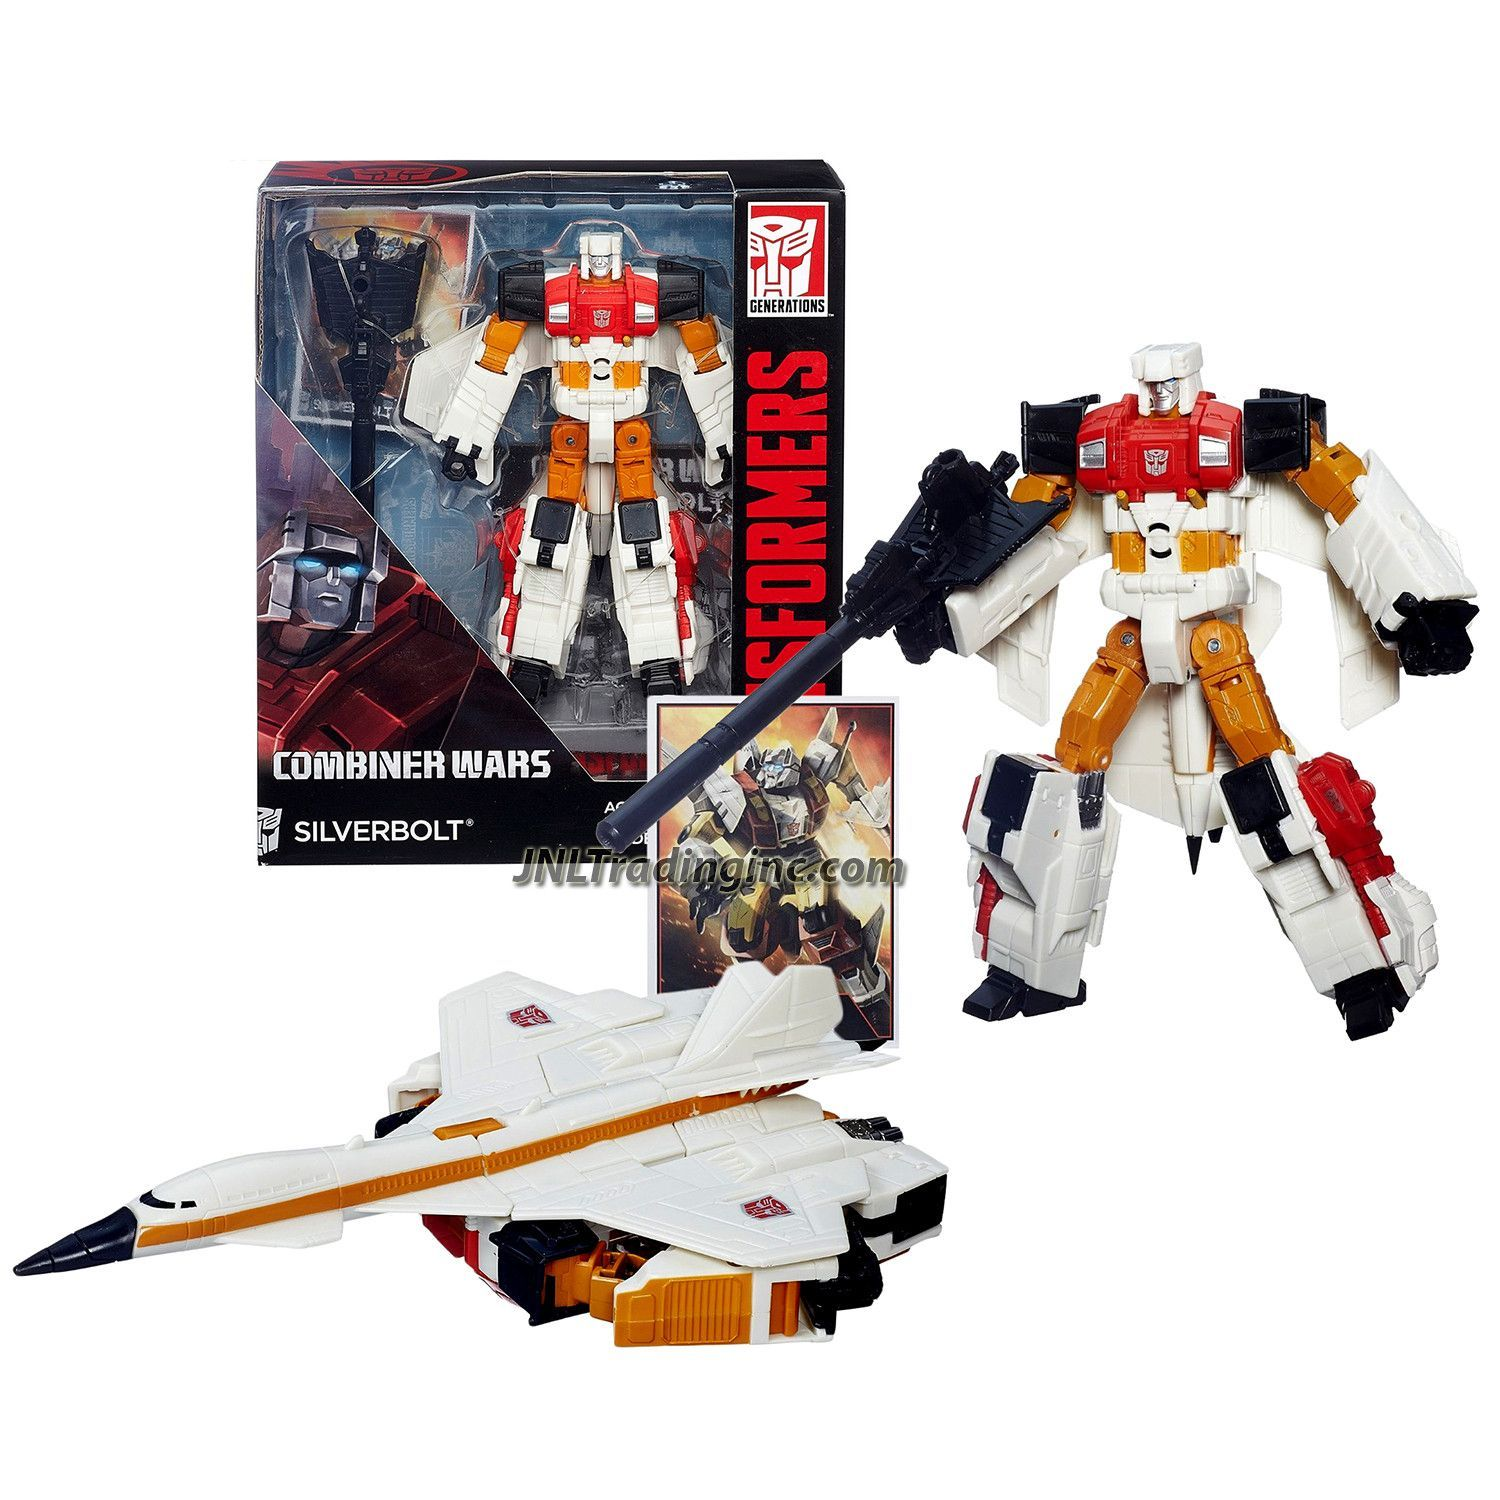 HASBRO TRANSFORMERS COMBINER WARS VOYAGER CLASS SILVERBOLT ACTION FIGURES TOY